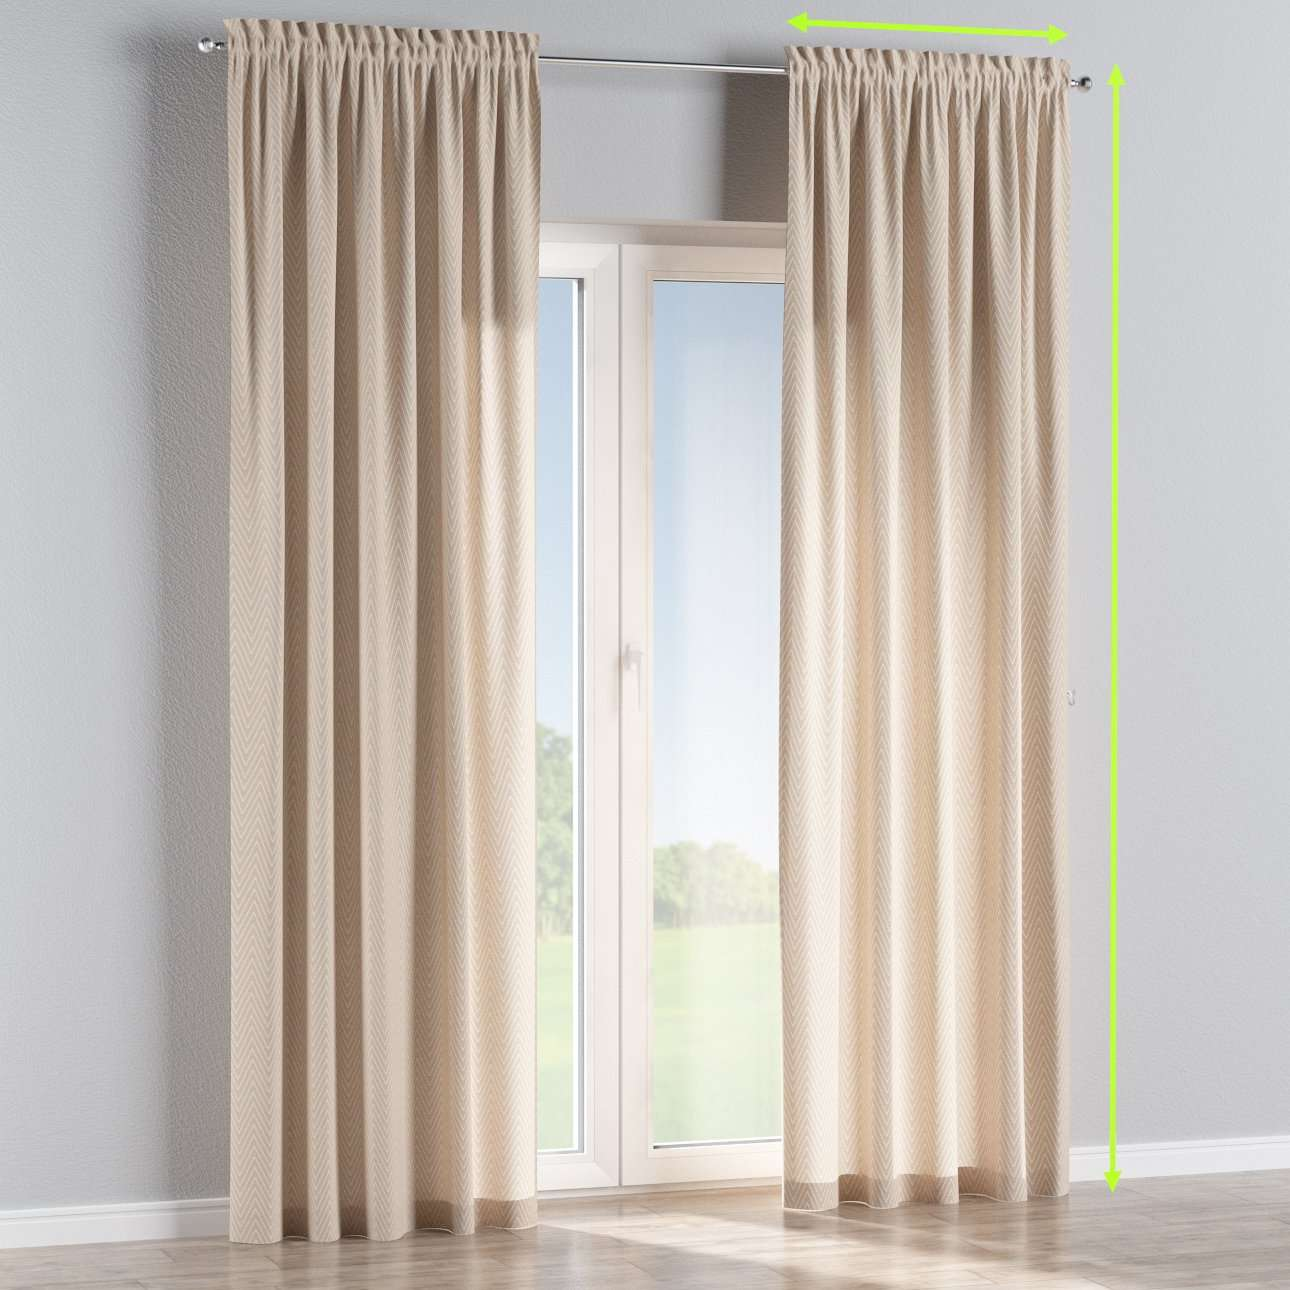 Slot and frill lined curtains in collection Brooklyn, fabric: 137-91